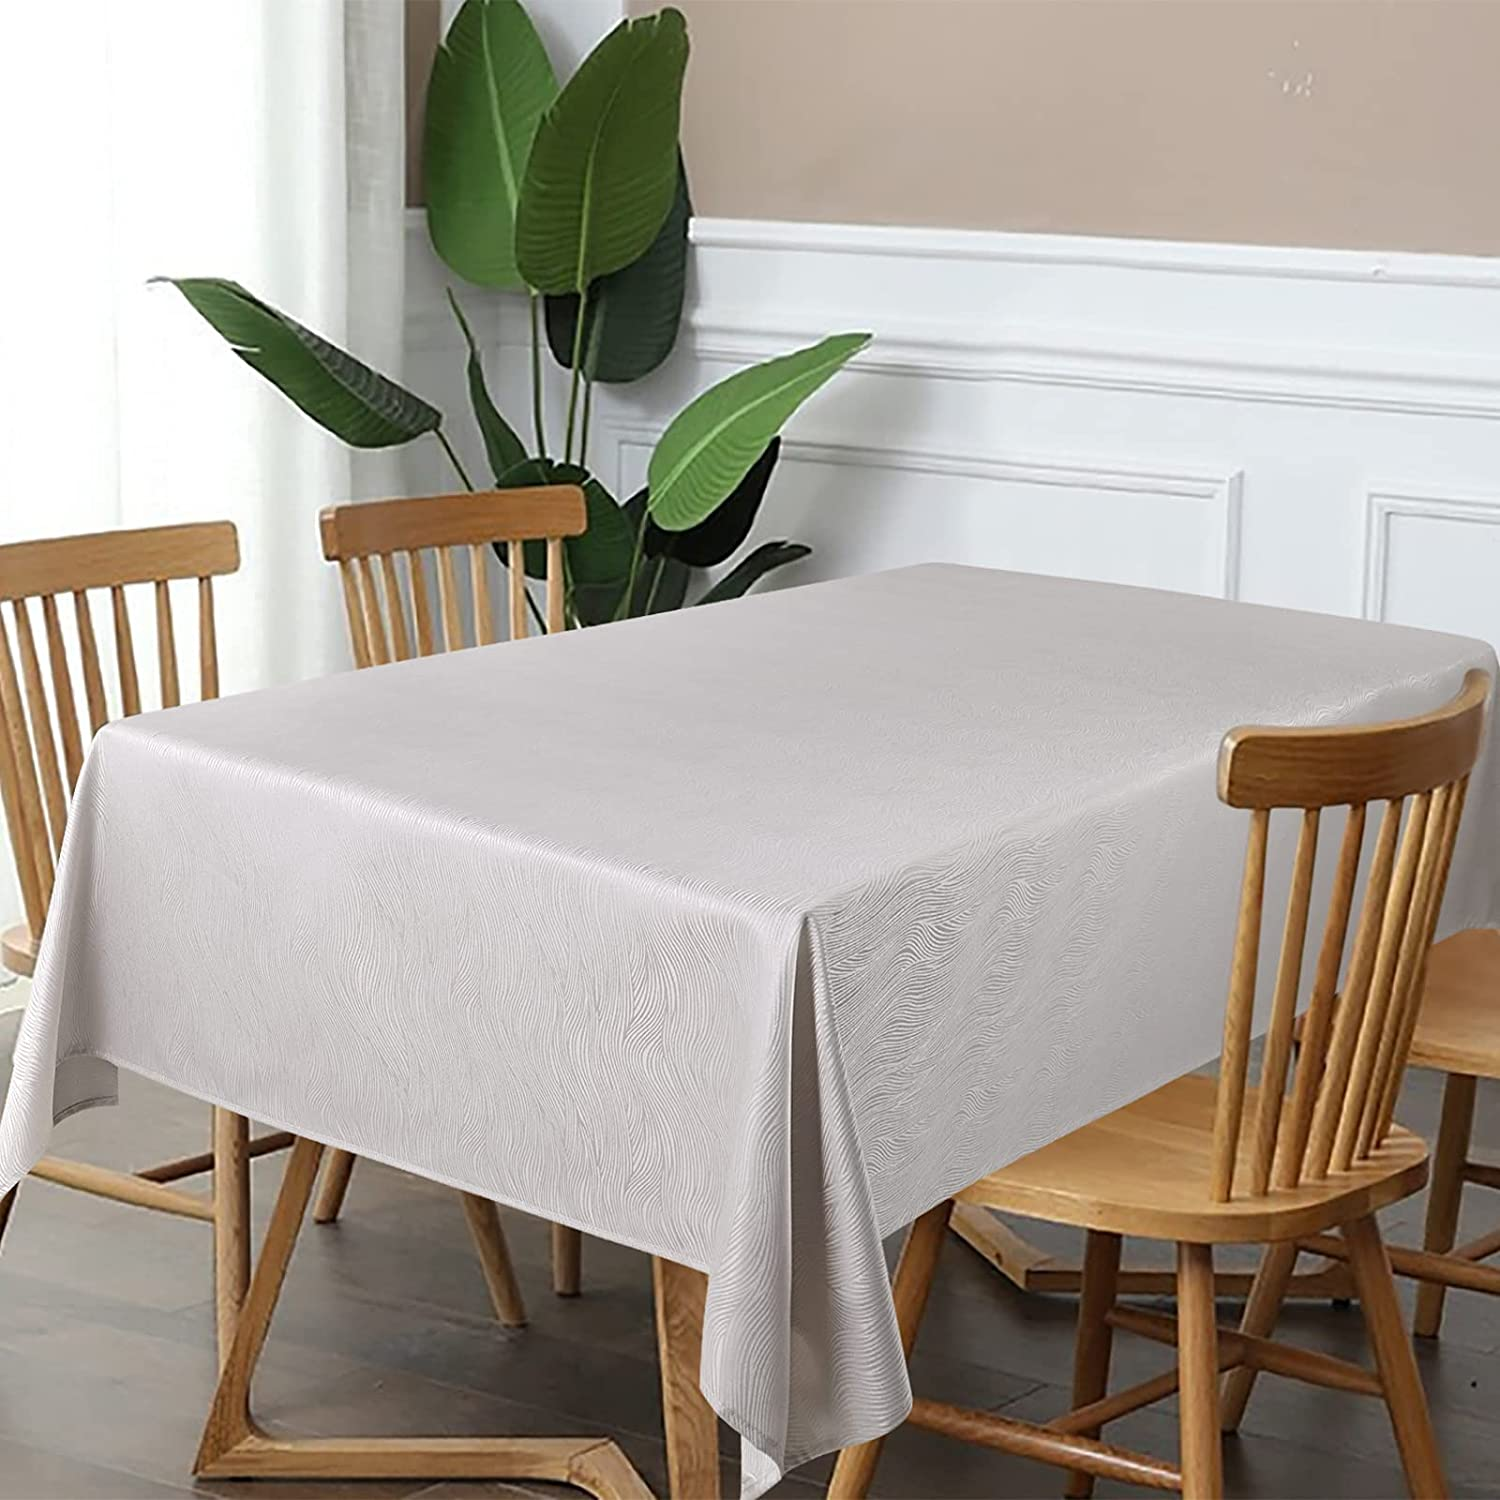 Swirl Pattern Raleigh Mall Table Cloth Waterproof Max 56% OFF Rectangle with Tablecloth